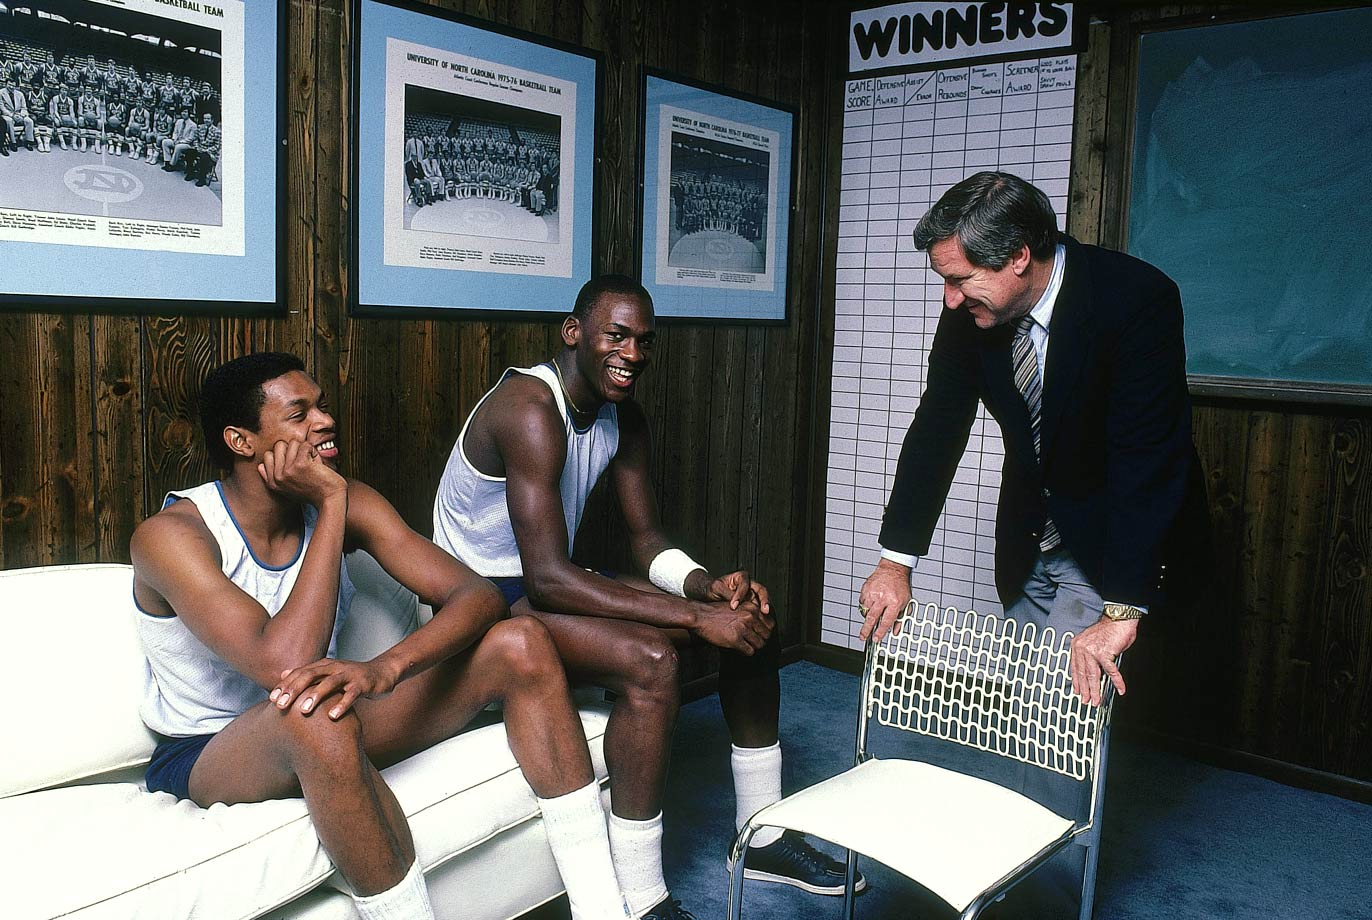 Michael Jordan and Sam Perkins sit on the couch in coach Dean Smith's office at North Carolina in November 1983. Smith won the first national championship of his Hall of Fame coaching career with Jordan and Perkins in 1982.